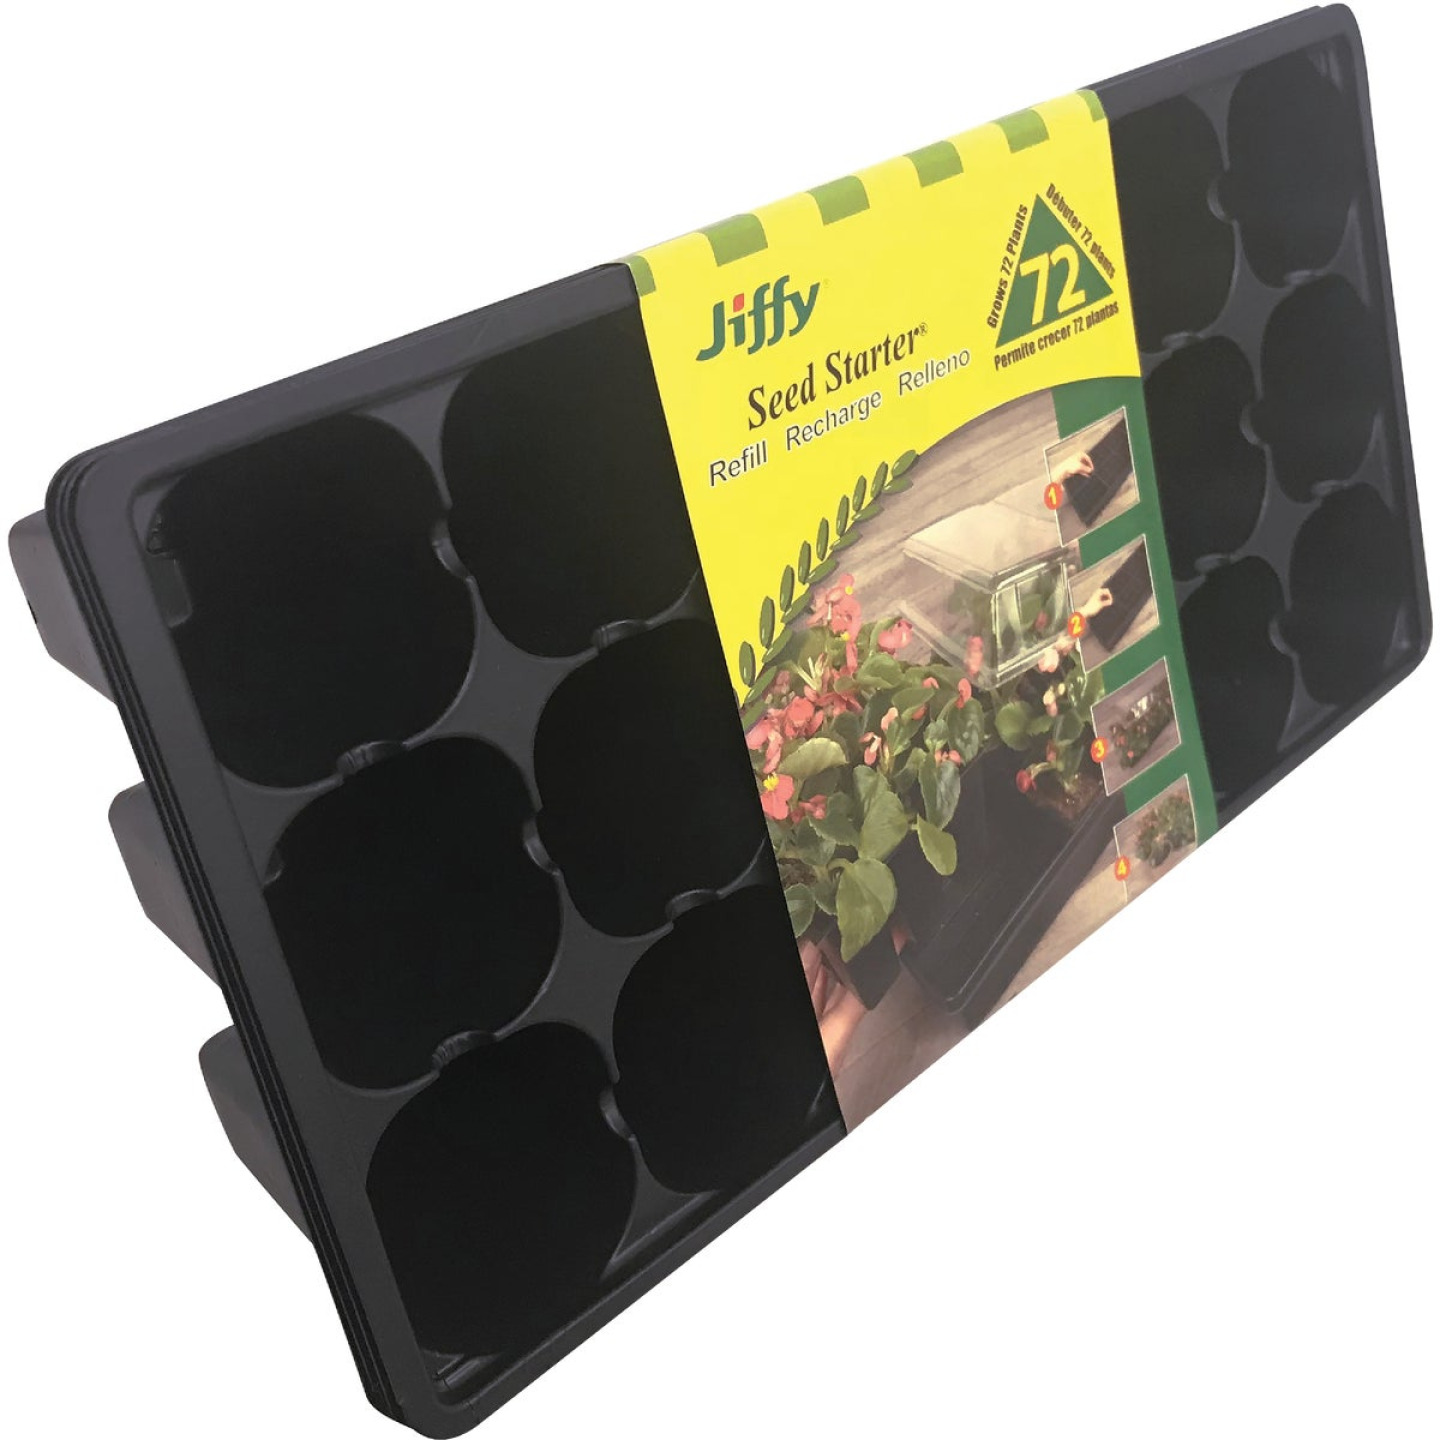 Jiffy 72-Cell Seed Starter Greenhouse Seed Start Kit Refill Image 1